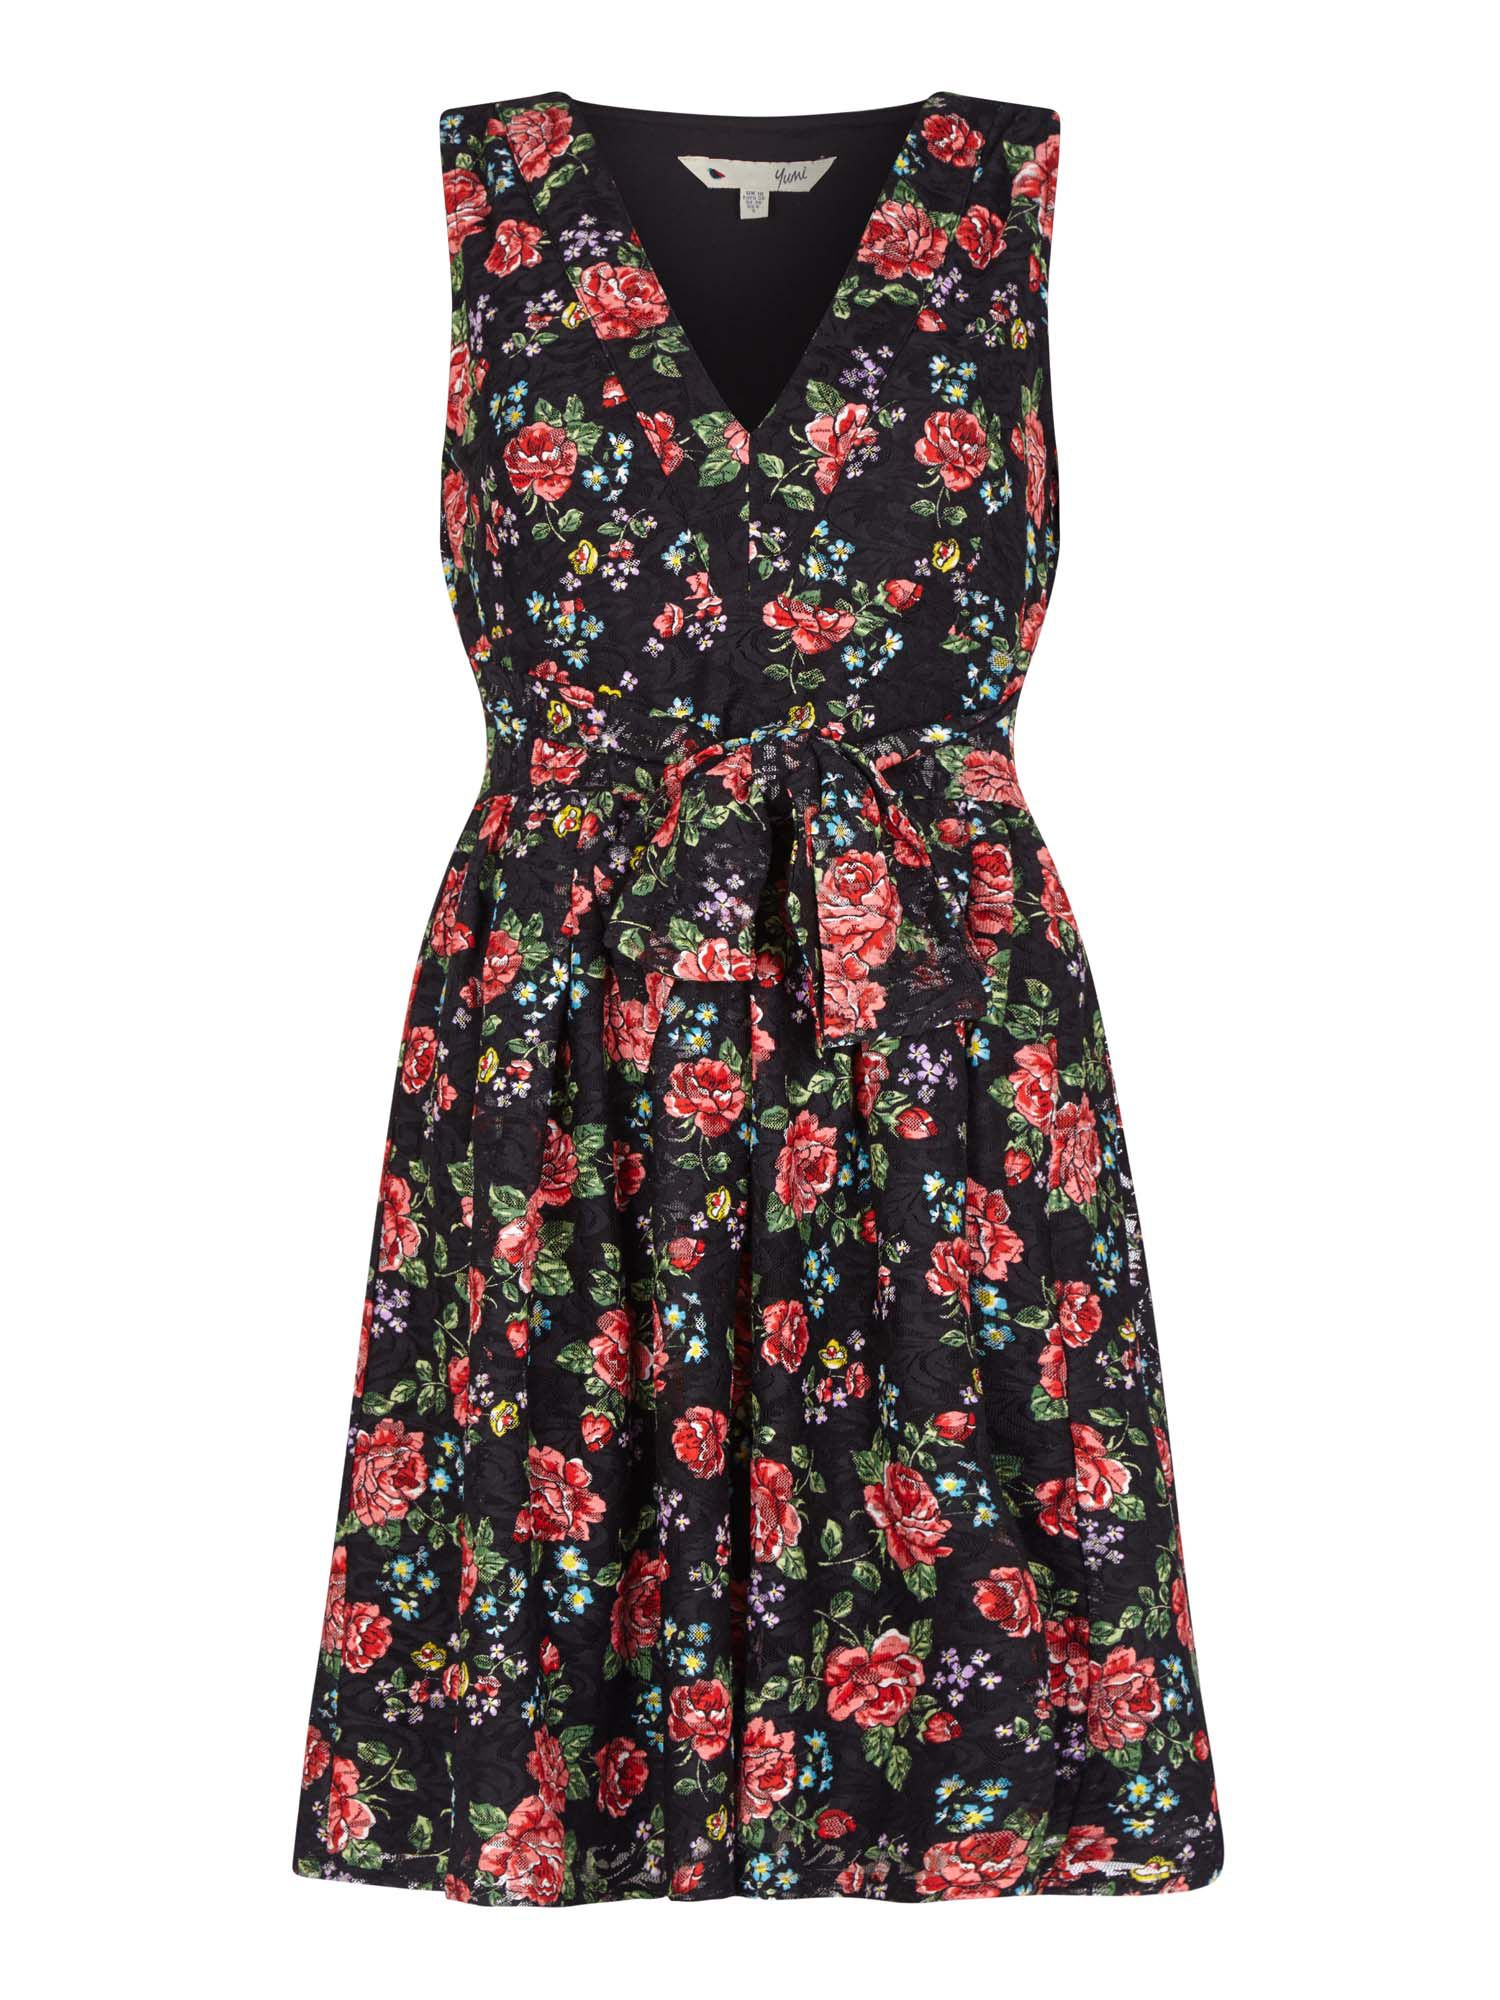 Yumi Curves Ditsy Flower Lace Skater Dress, Black